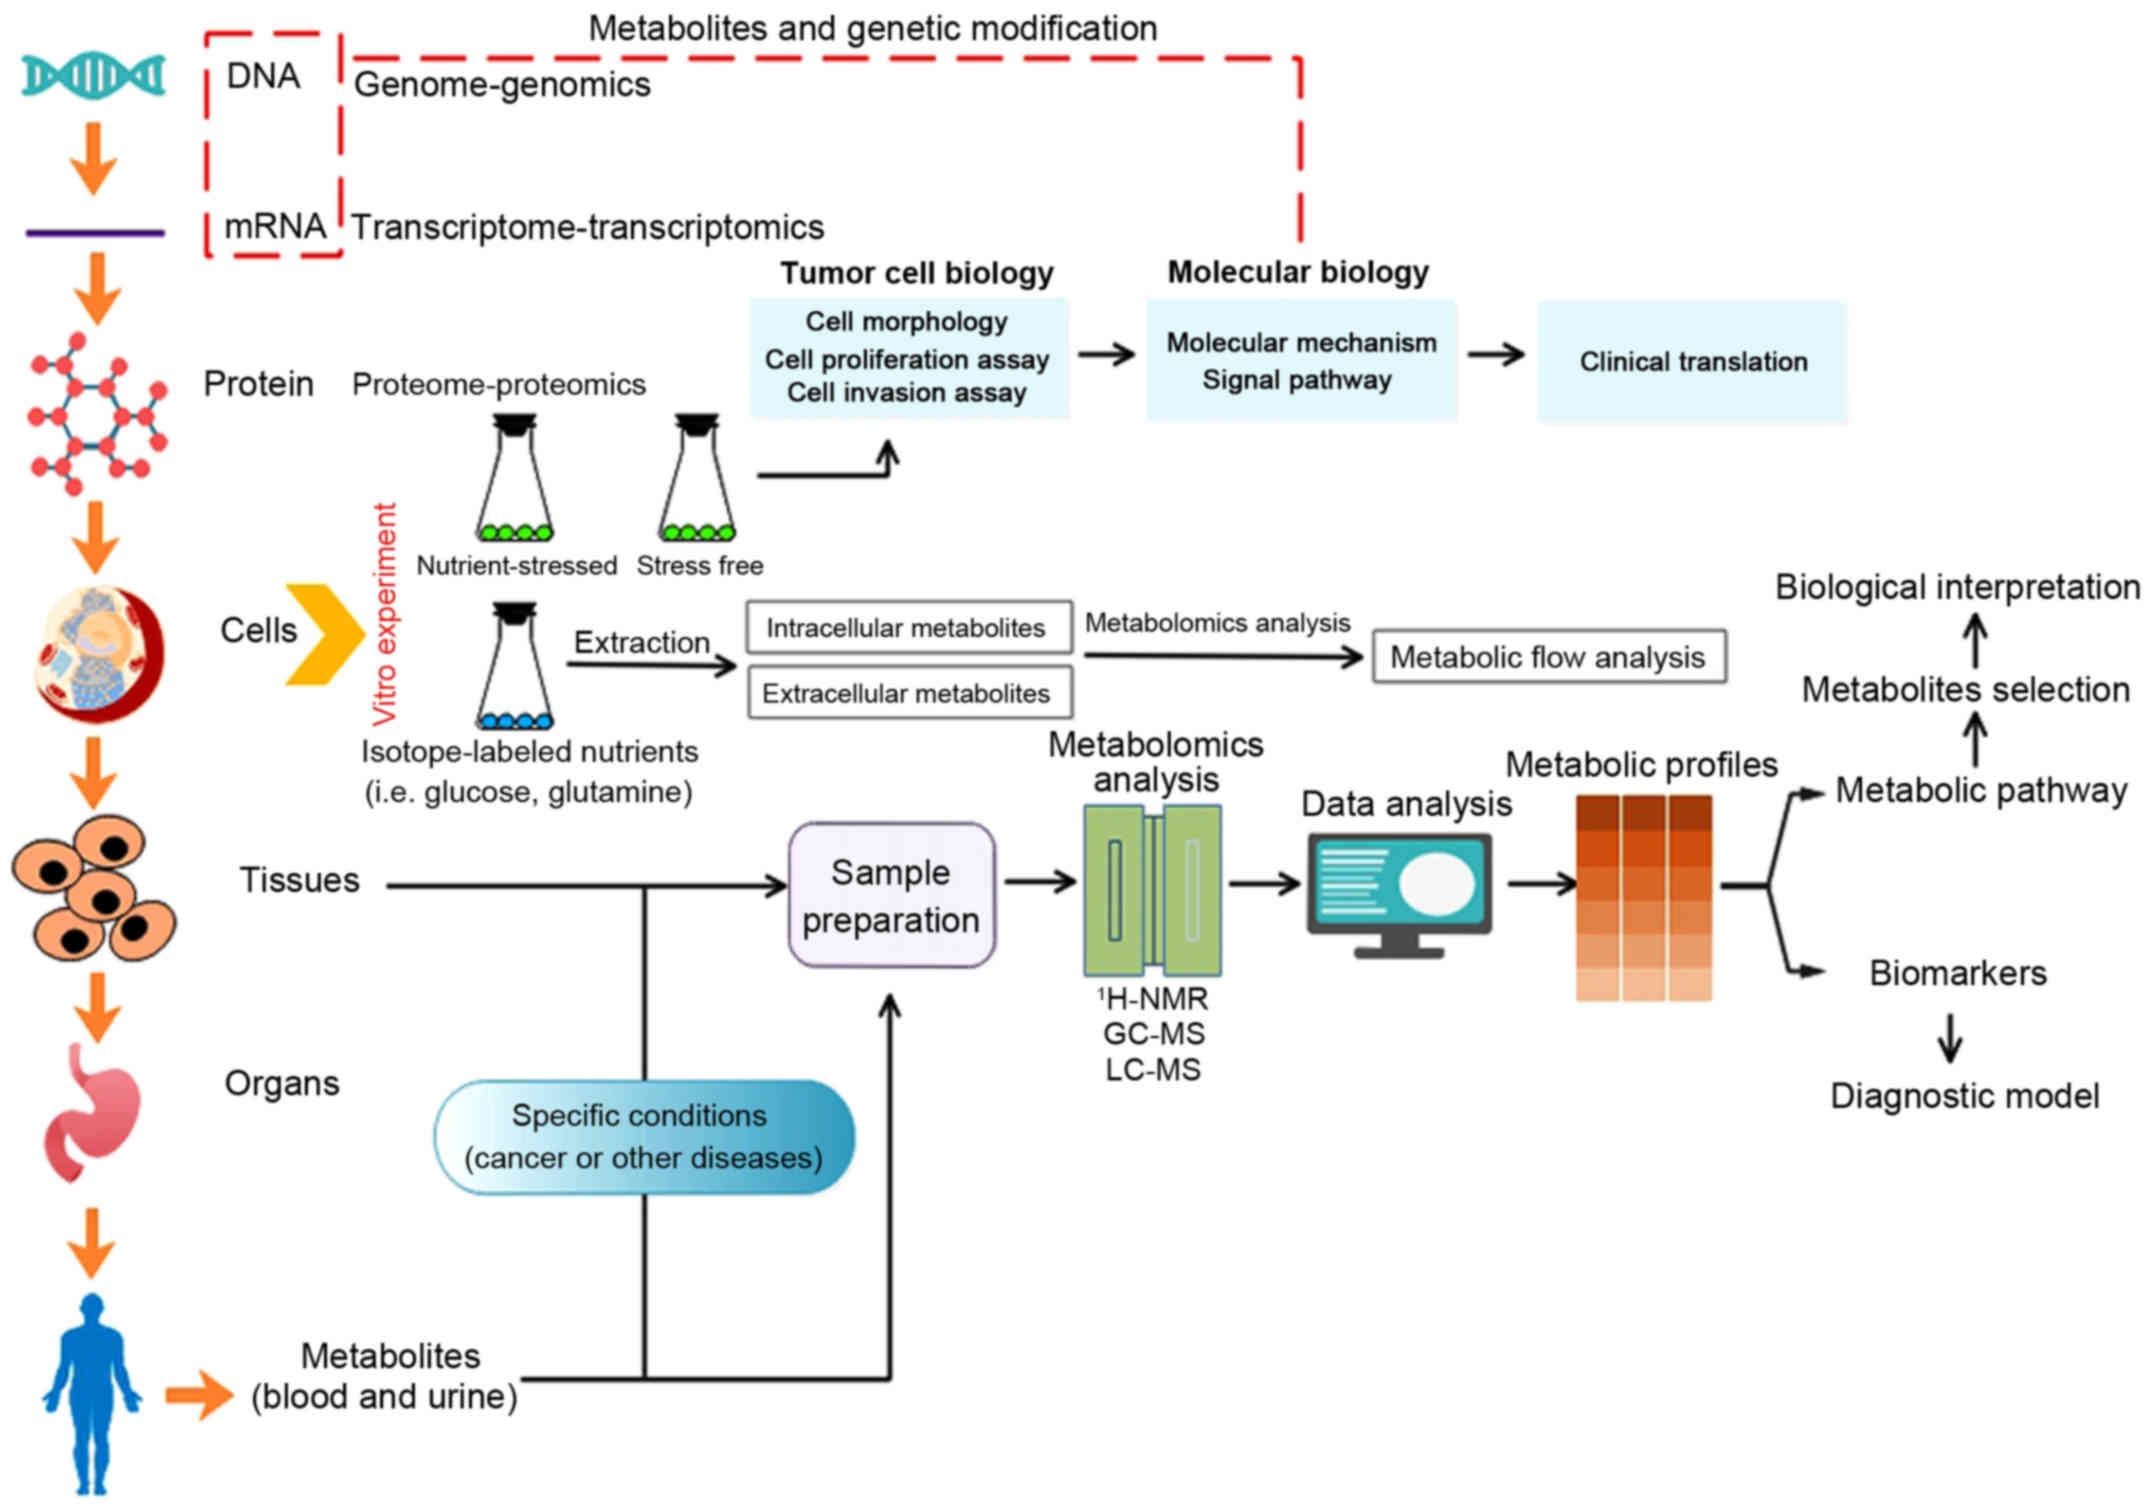 Gastric cancer biomarkers a systems biology approach - Scientific Publications